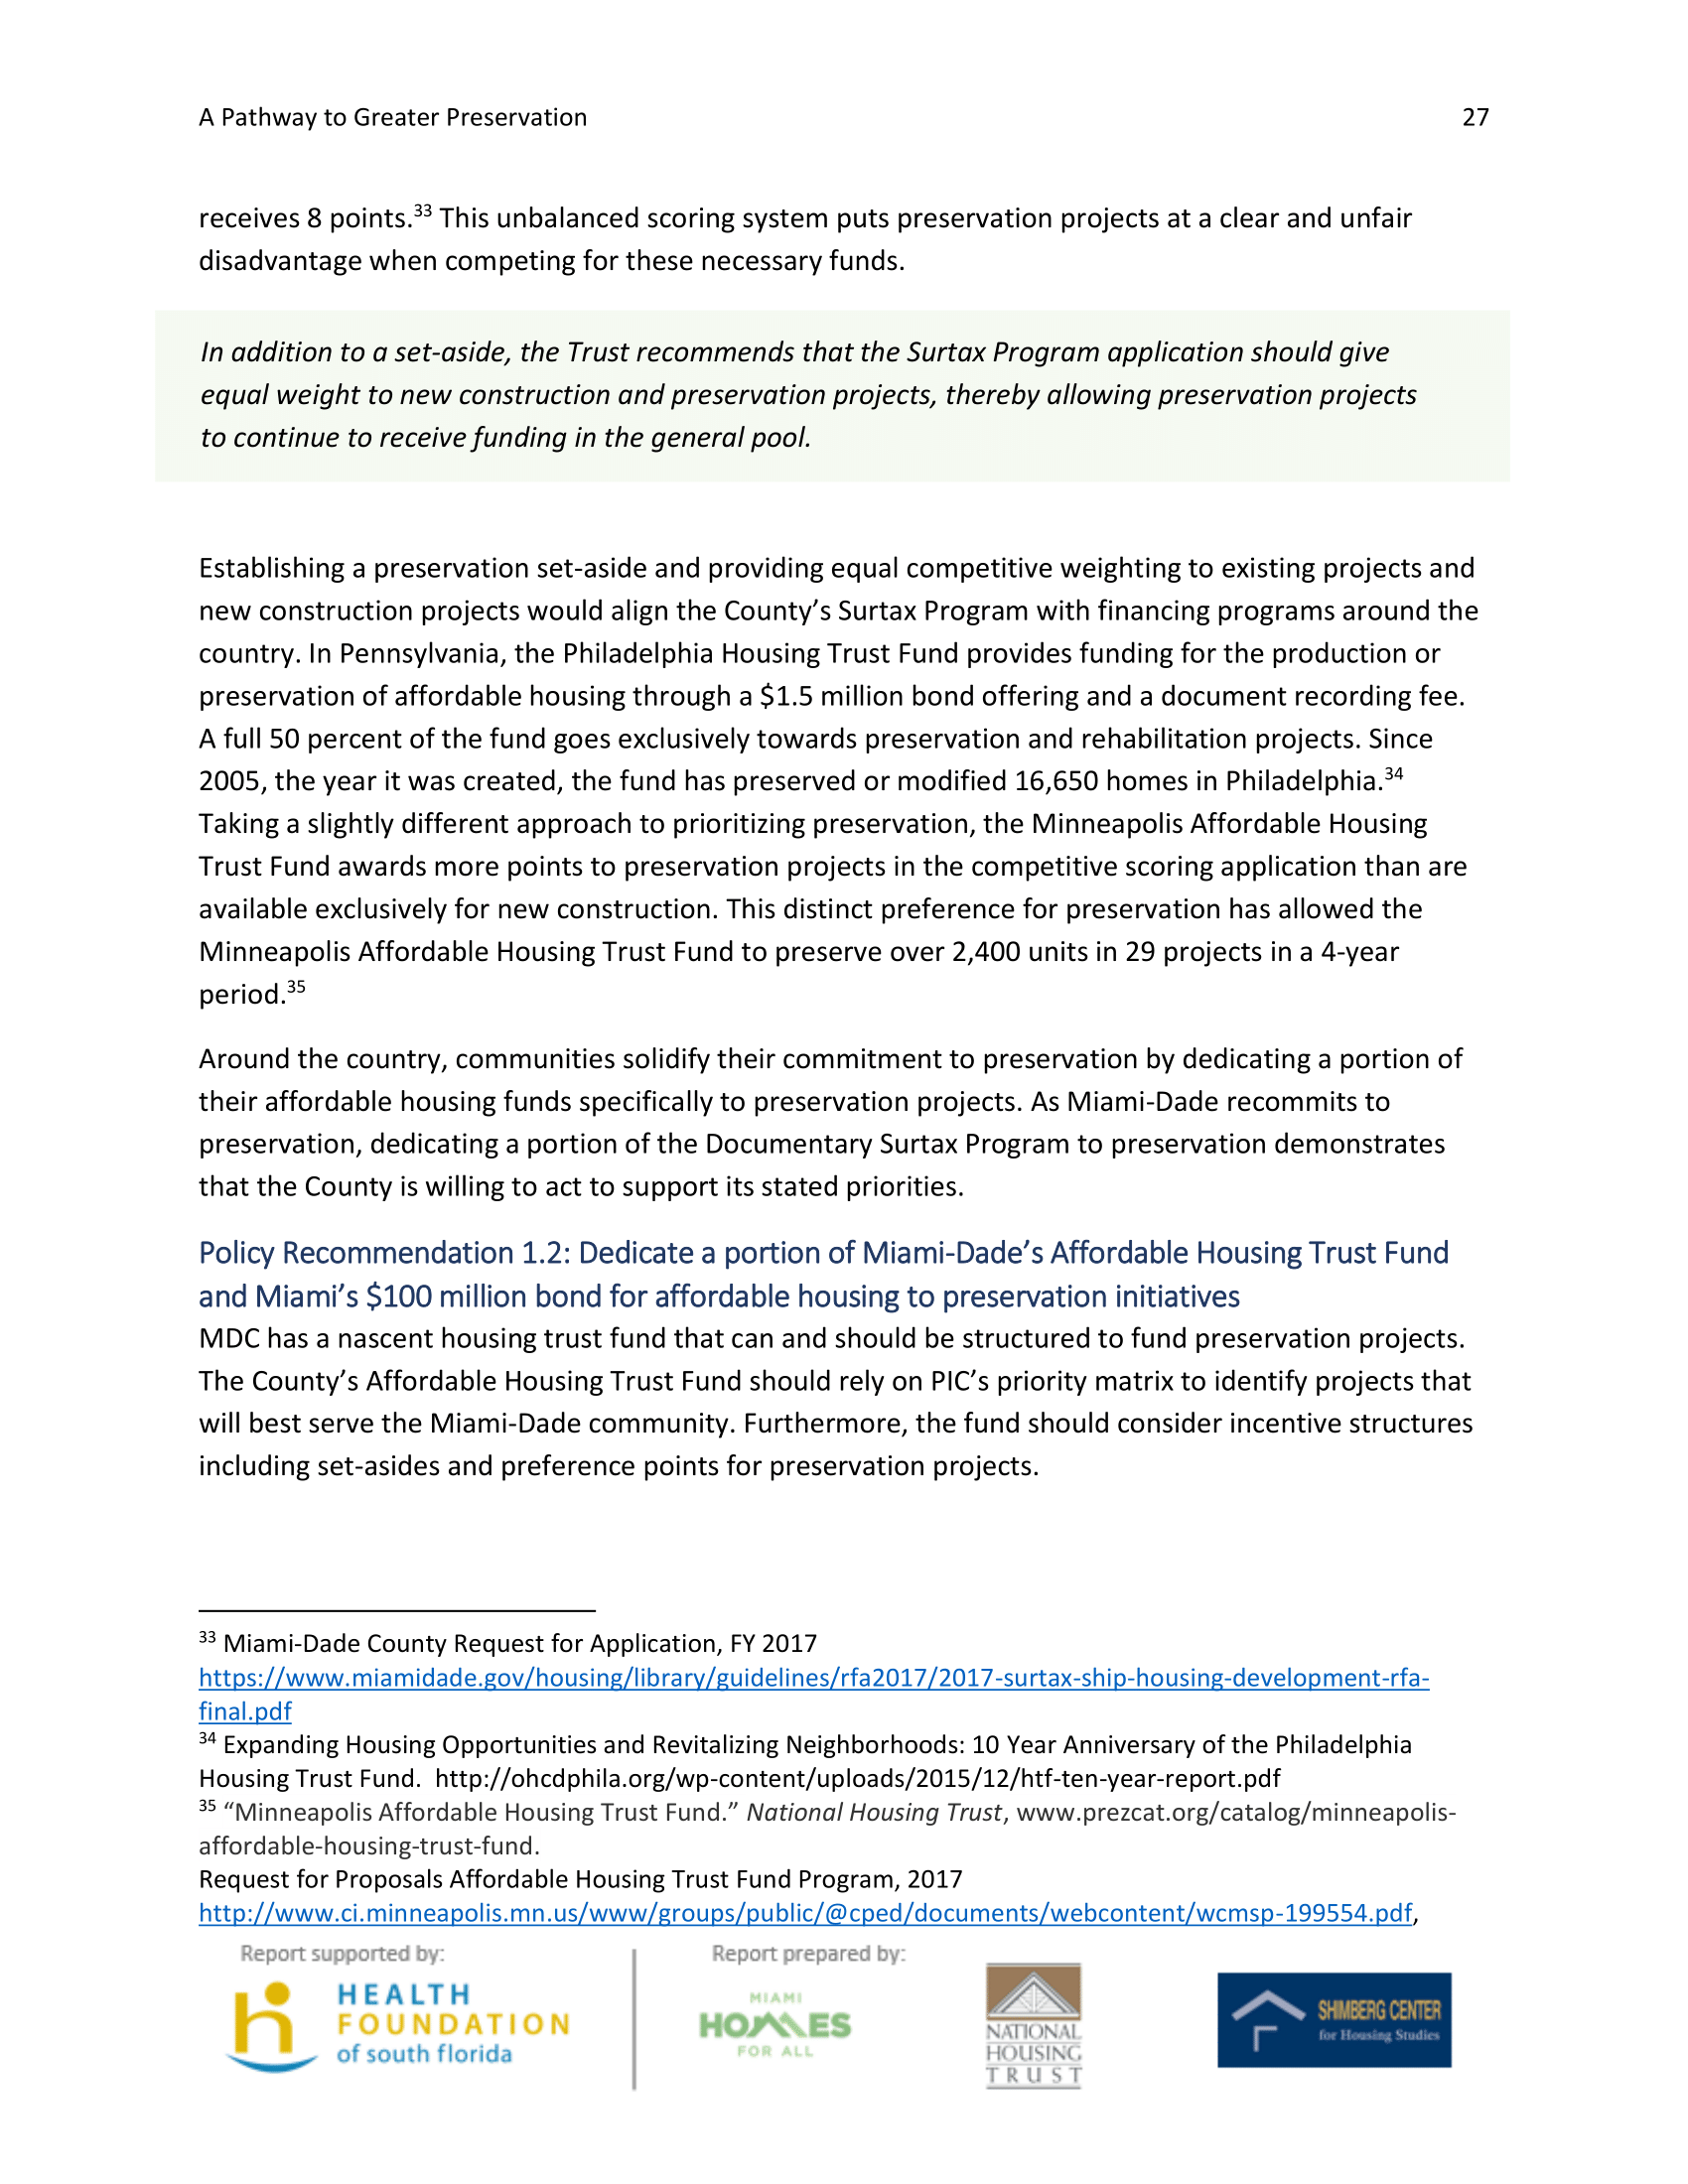 A Pathway to Greater Preservation - February 2018-35.png